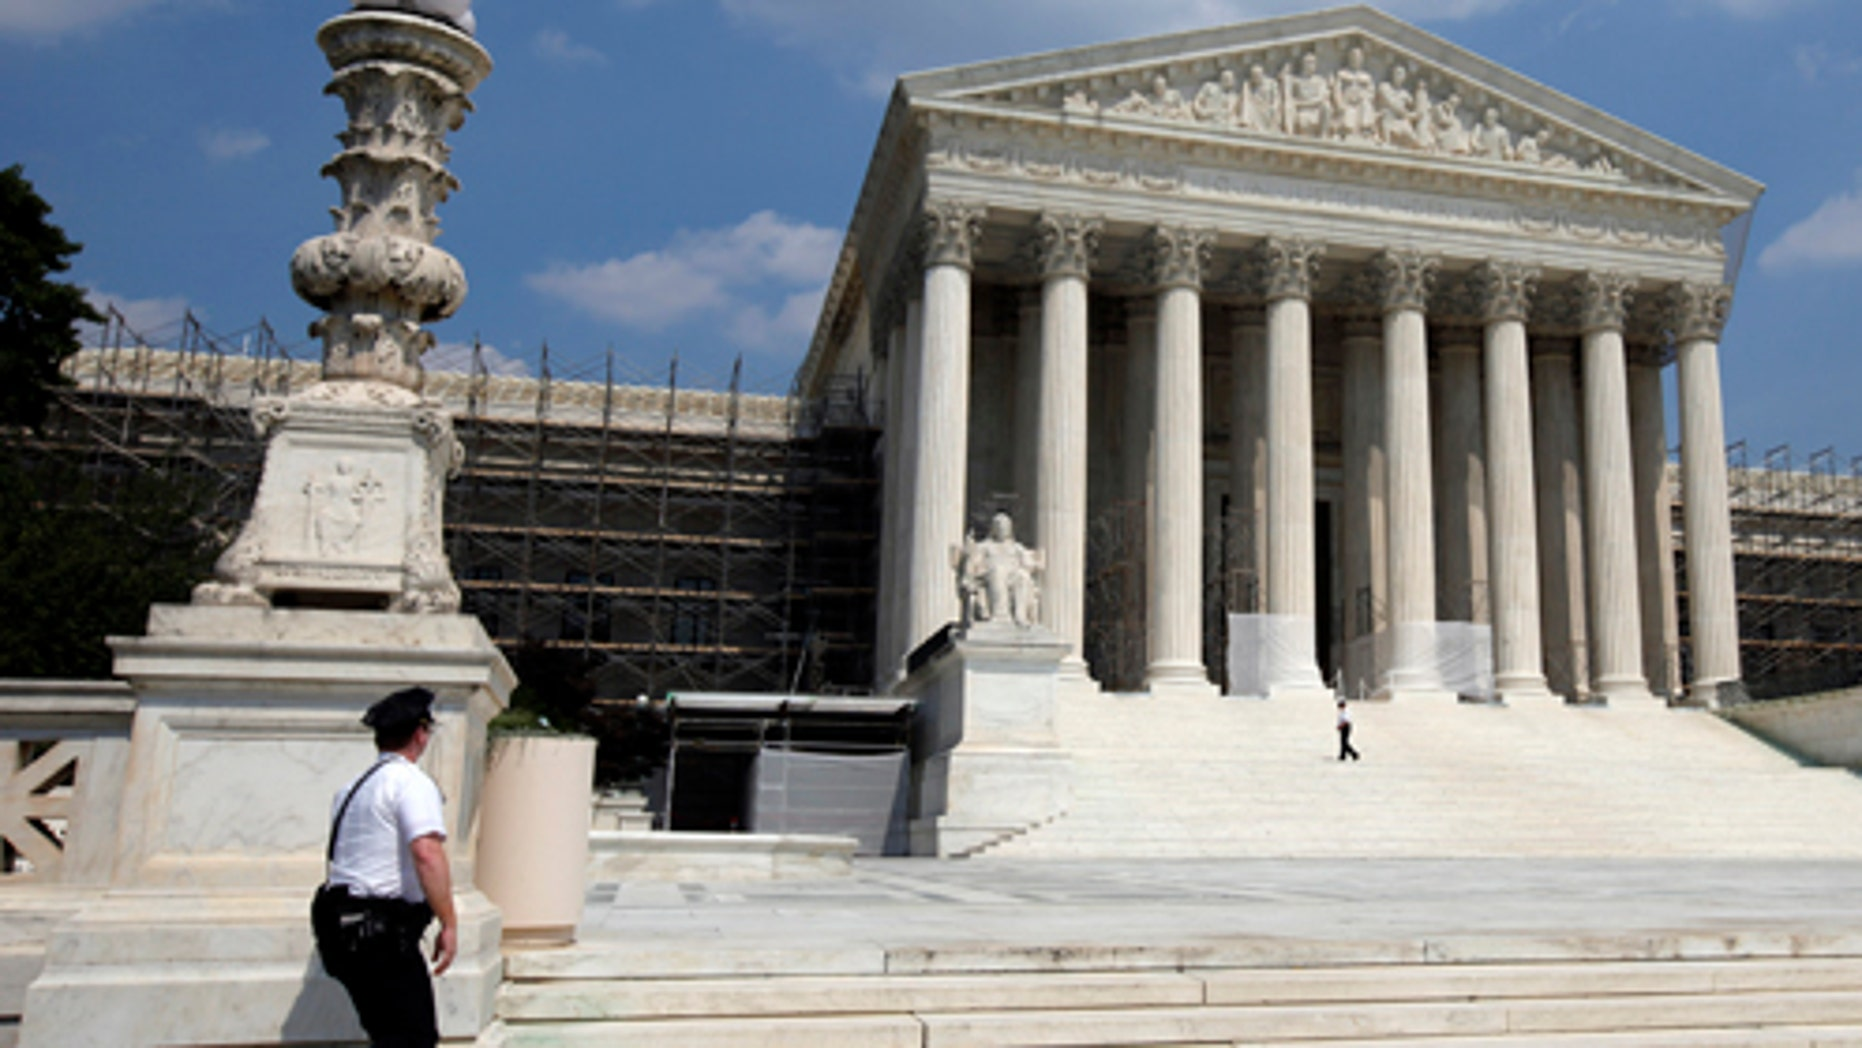 FILE: June 20, 2013: The U.S. Supreme Court building, in Washington, D.C.